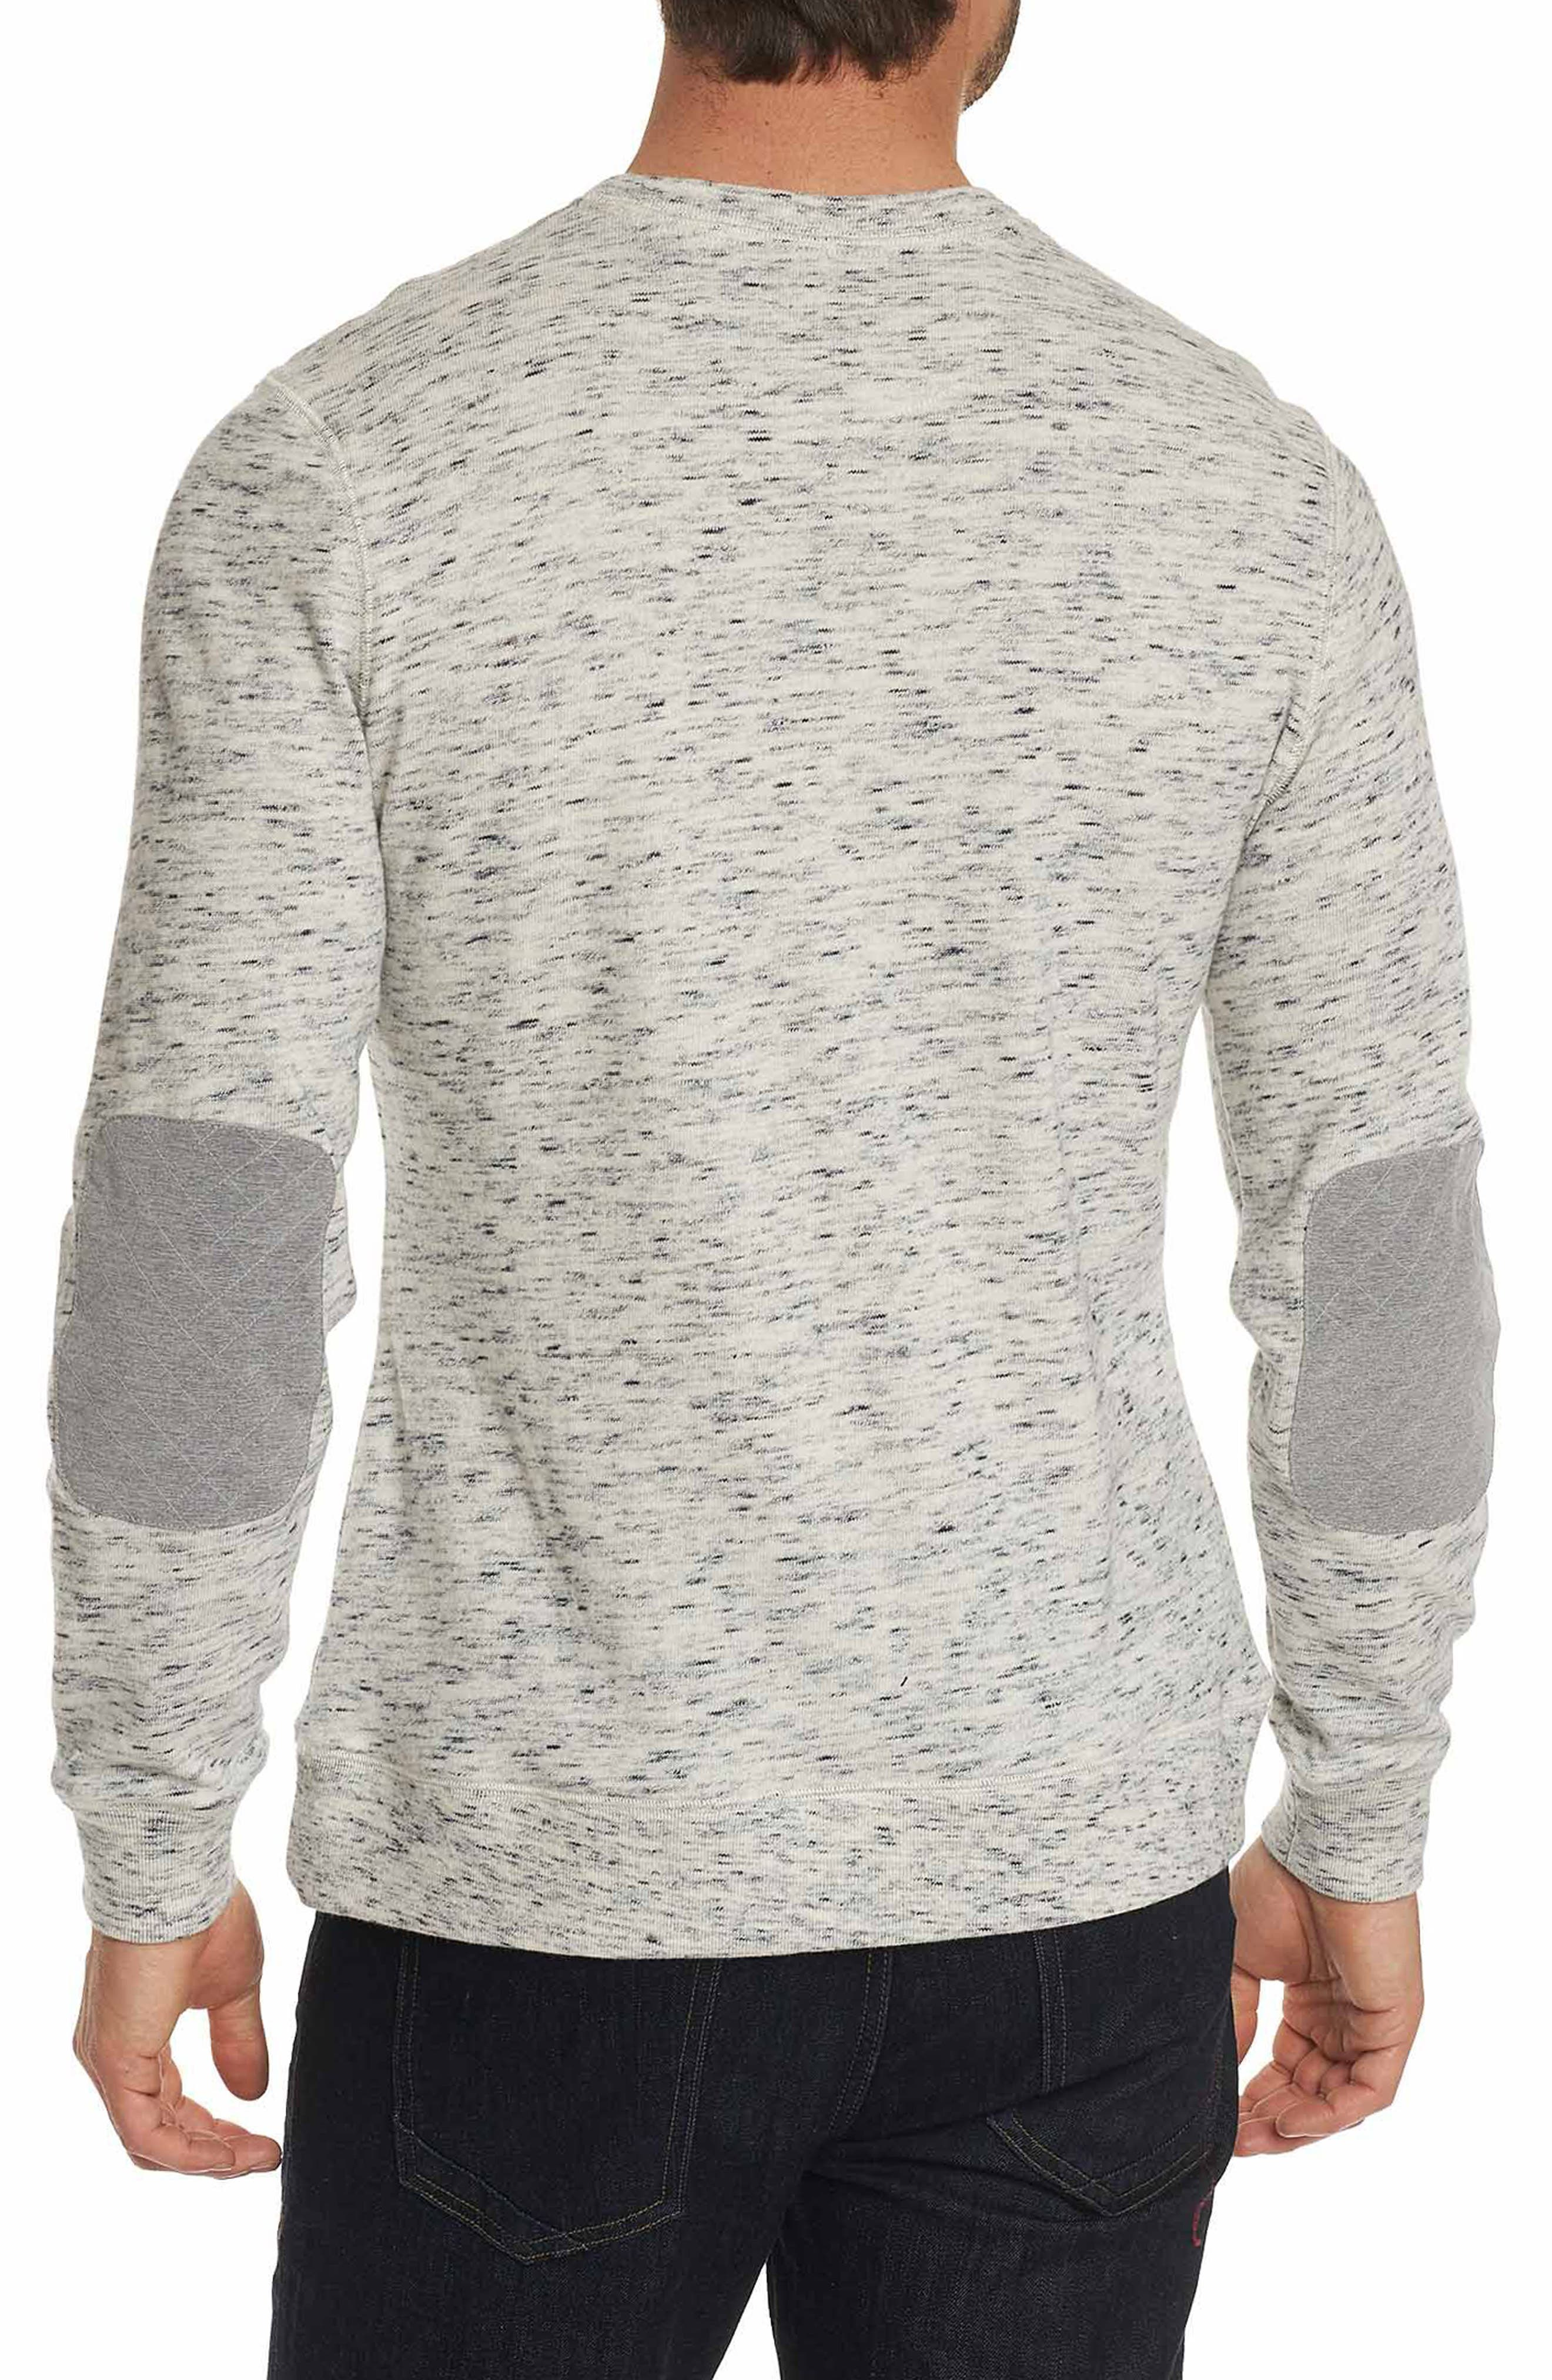 Alternate Image 2  - Robert Graham Endurance Elbow Patch Sweatshirt